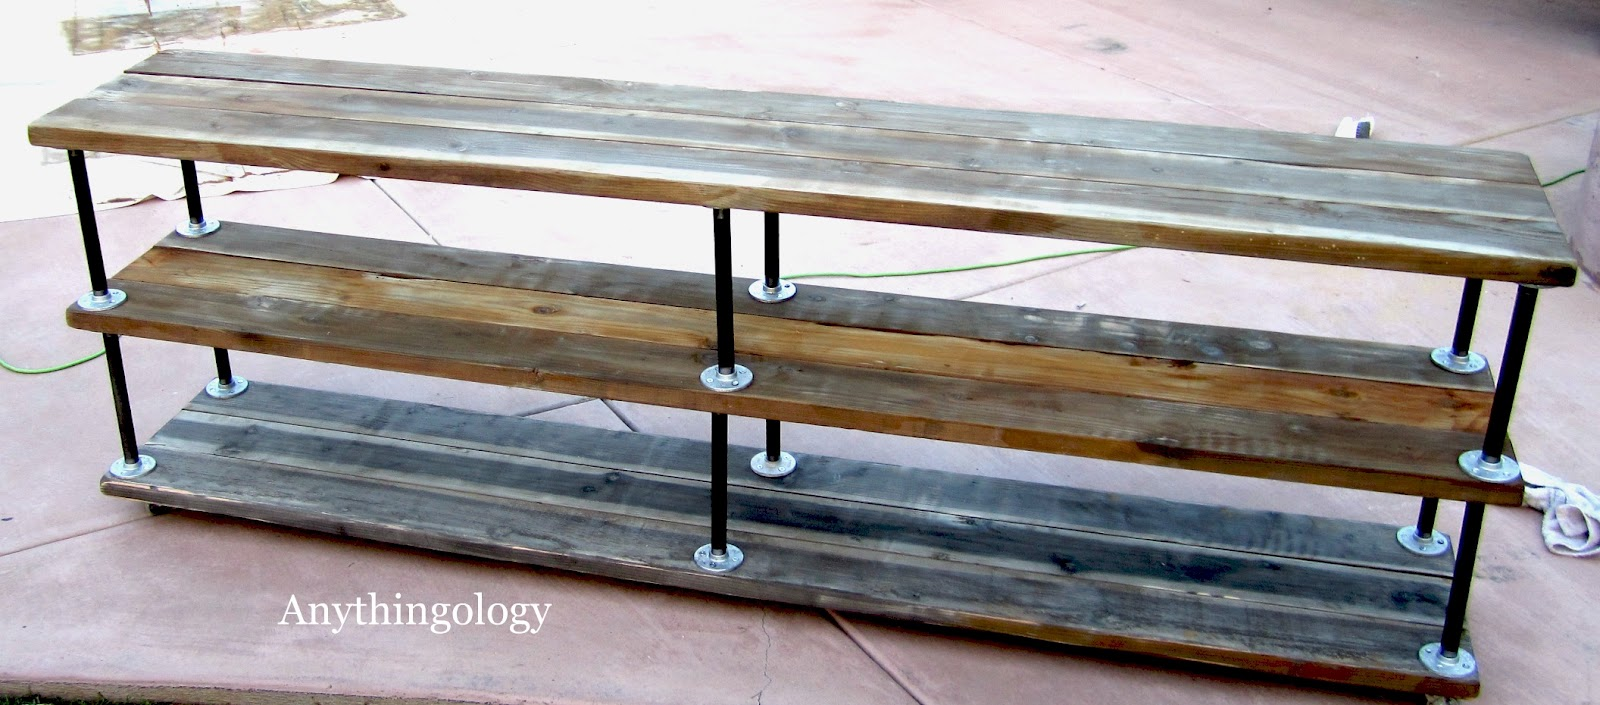 Anythingology diy industrial shelves for Diy galvanized pipe table